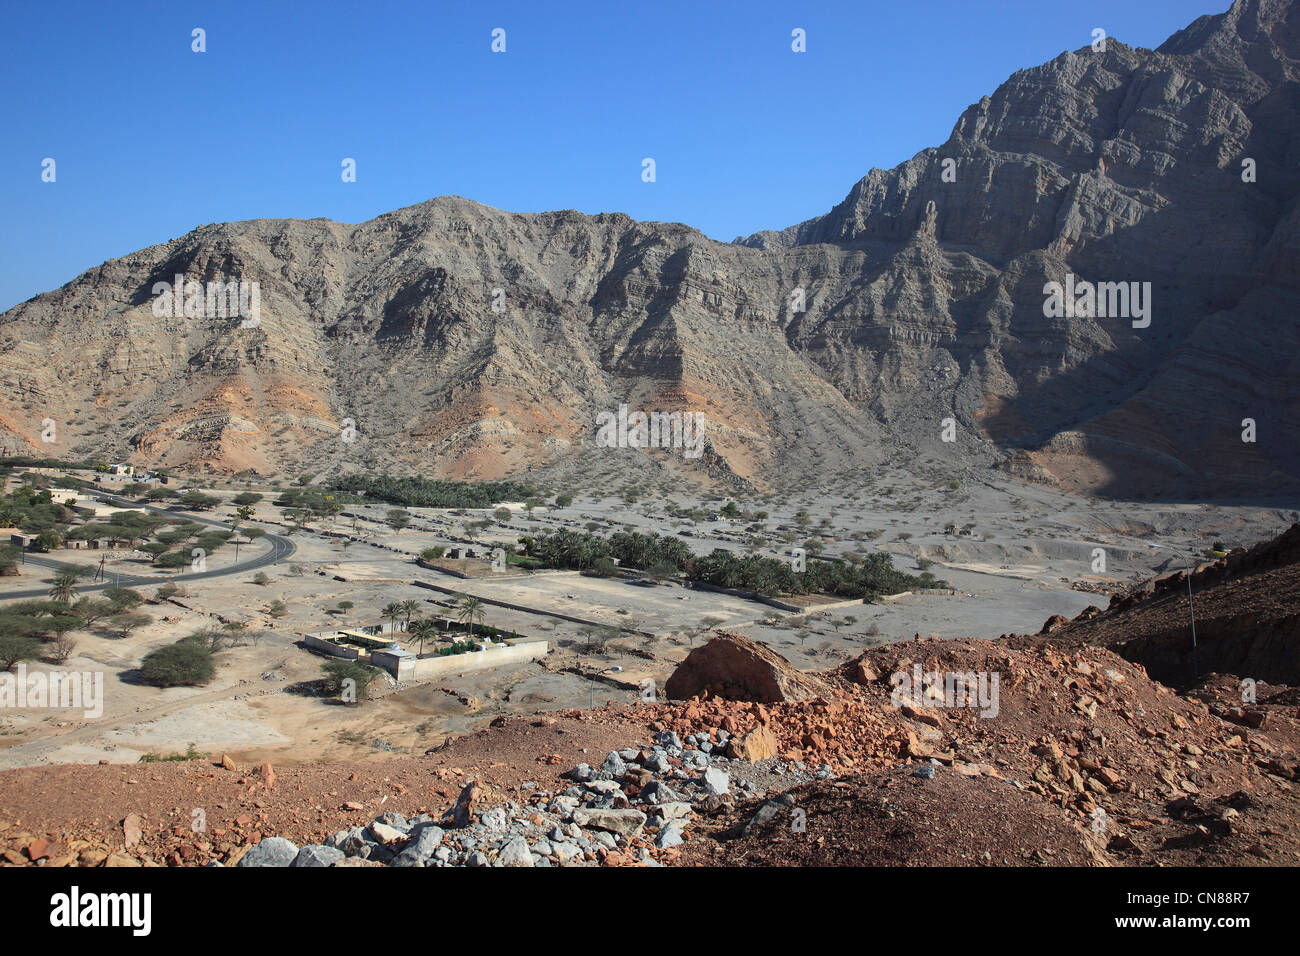 Bukha, in der omanischen Enklave Musandam, Oman Stock Photo